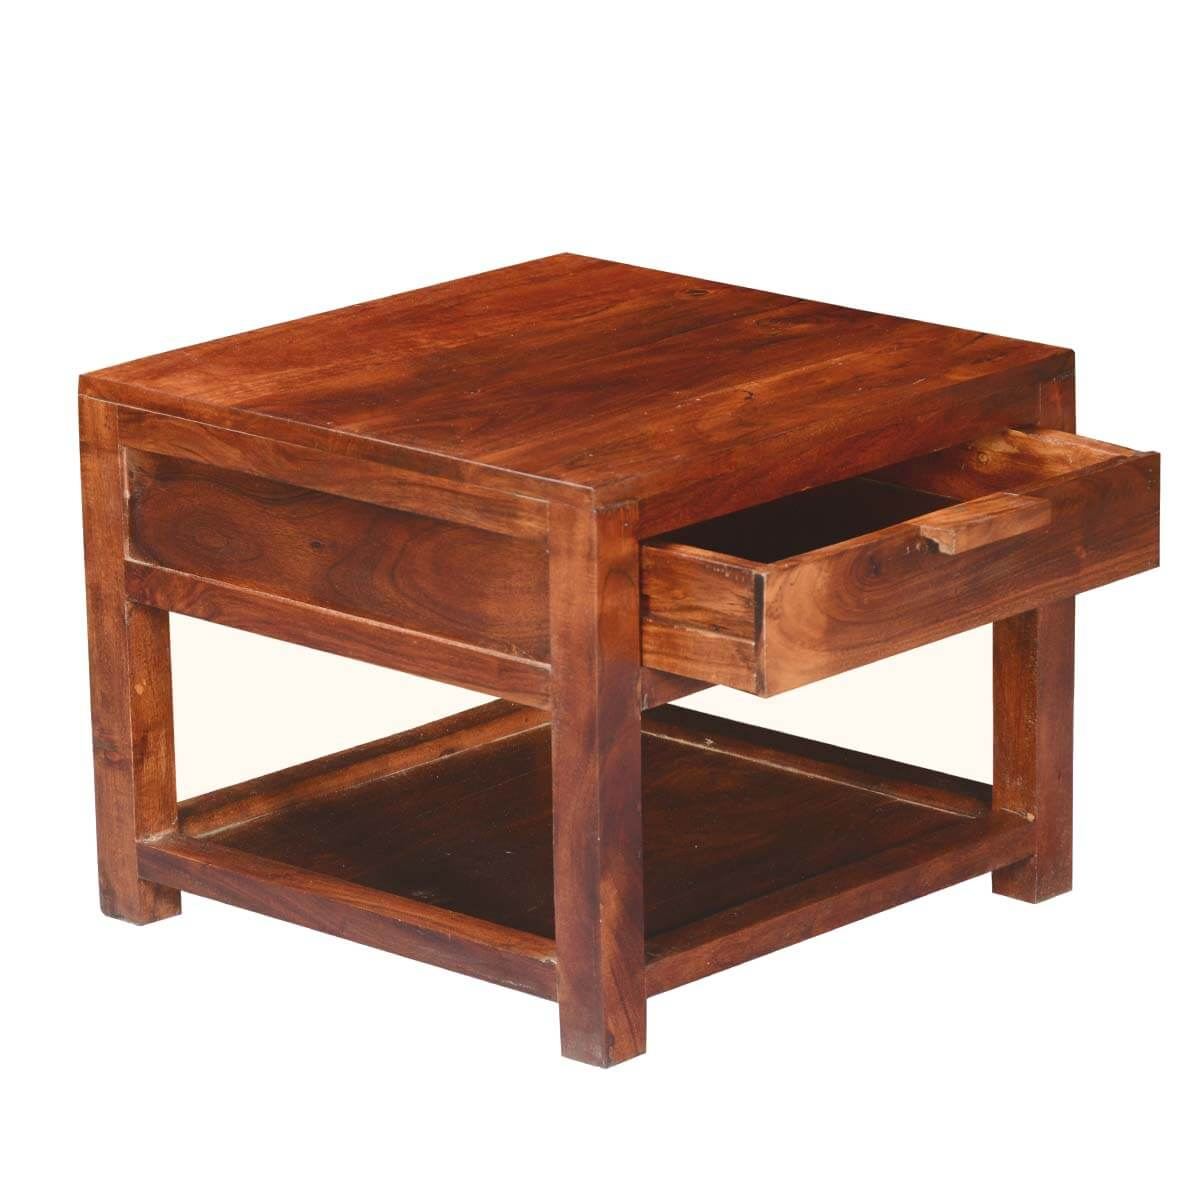 Rustic simplicity acacia wood square 2 tier small side for Small wood end table